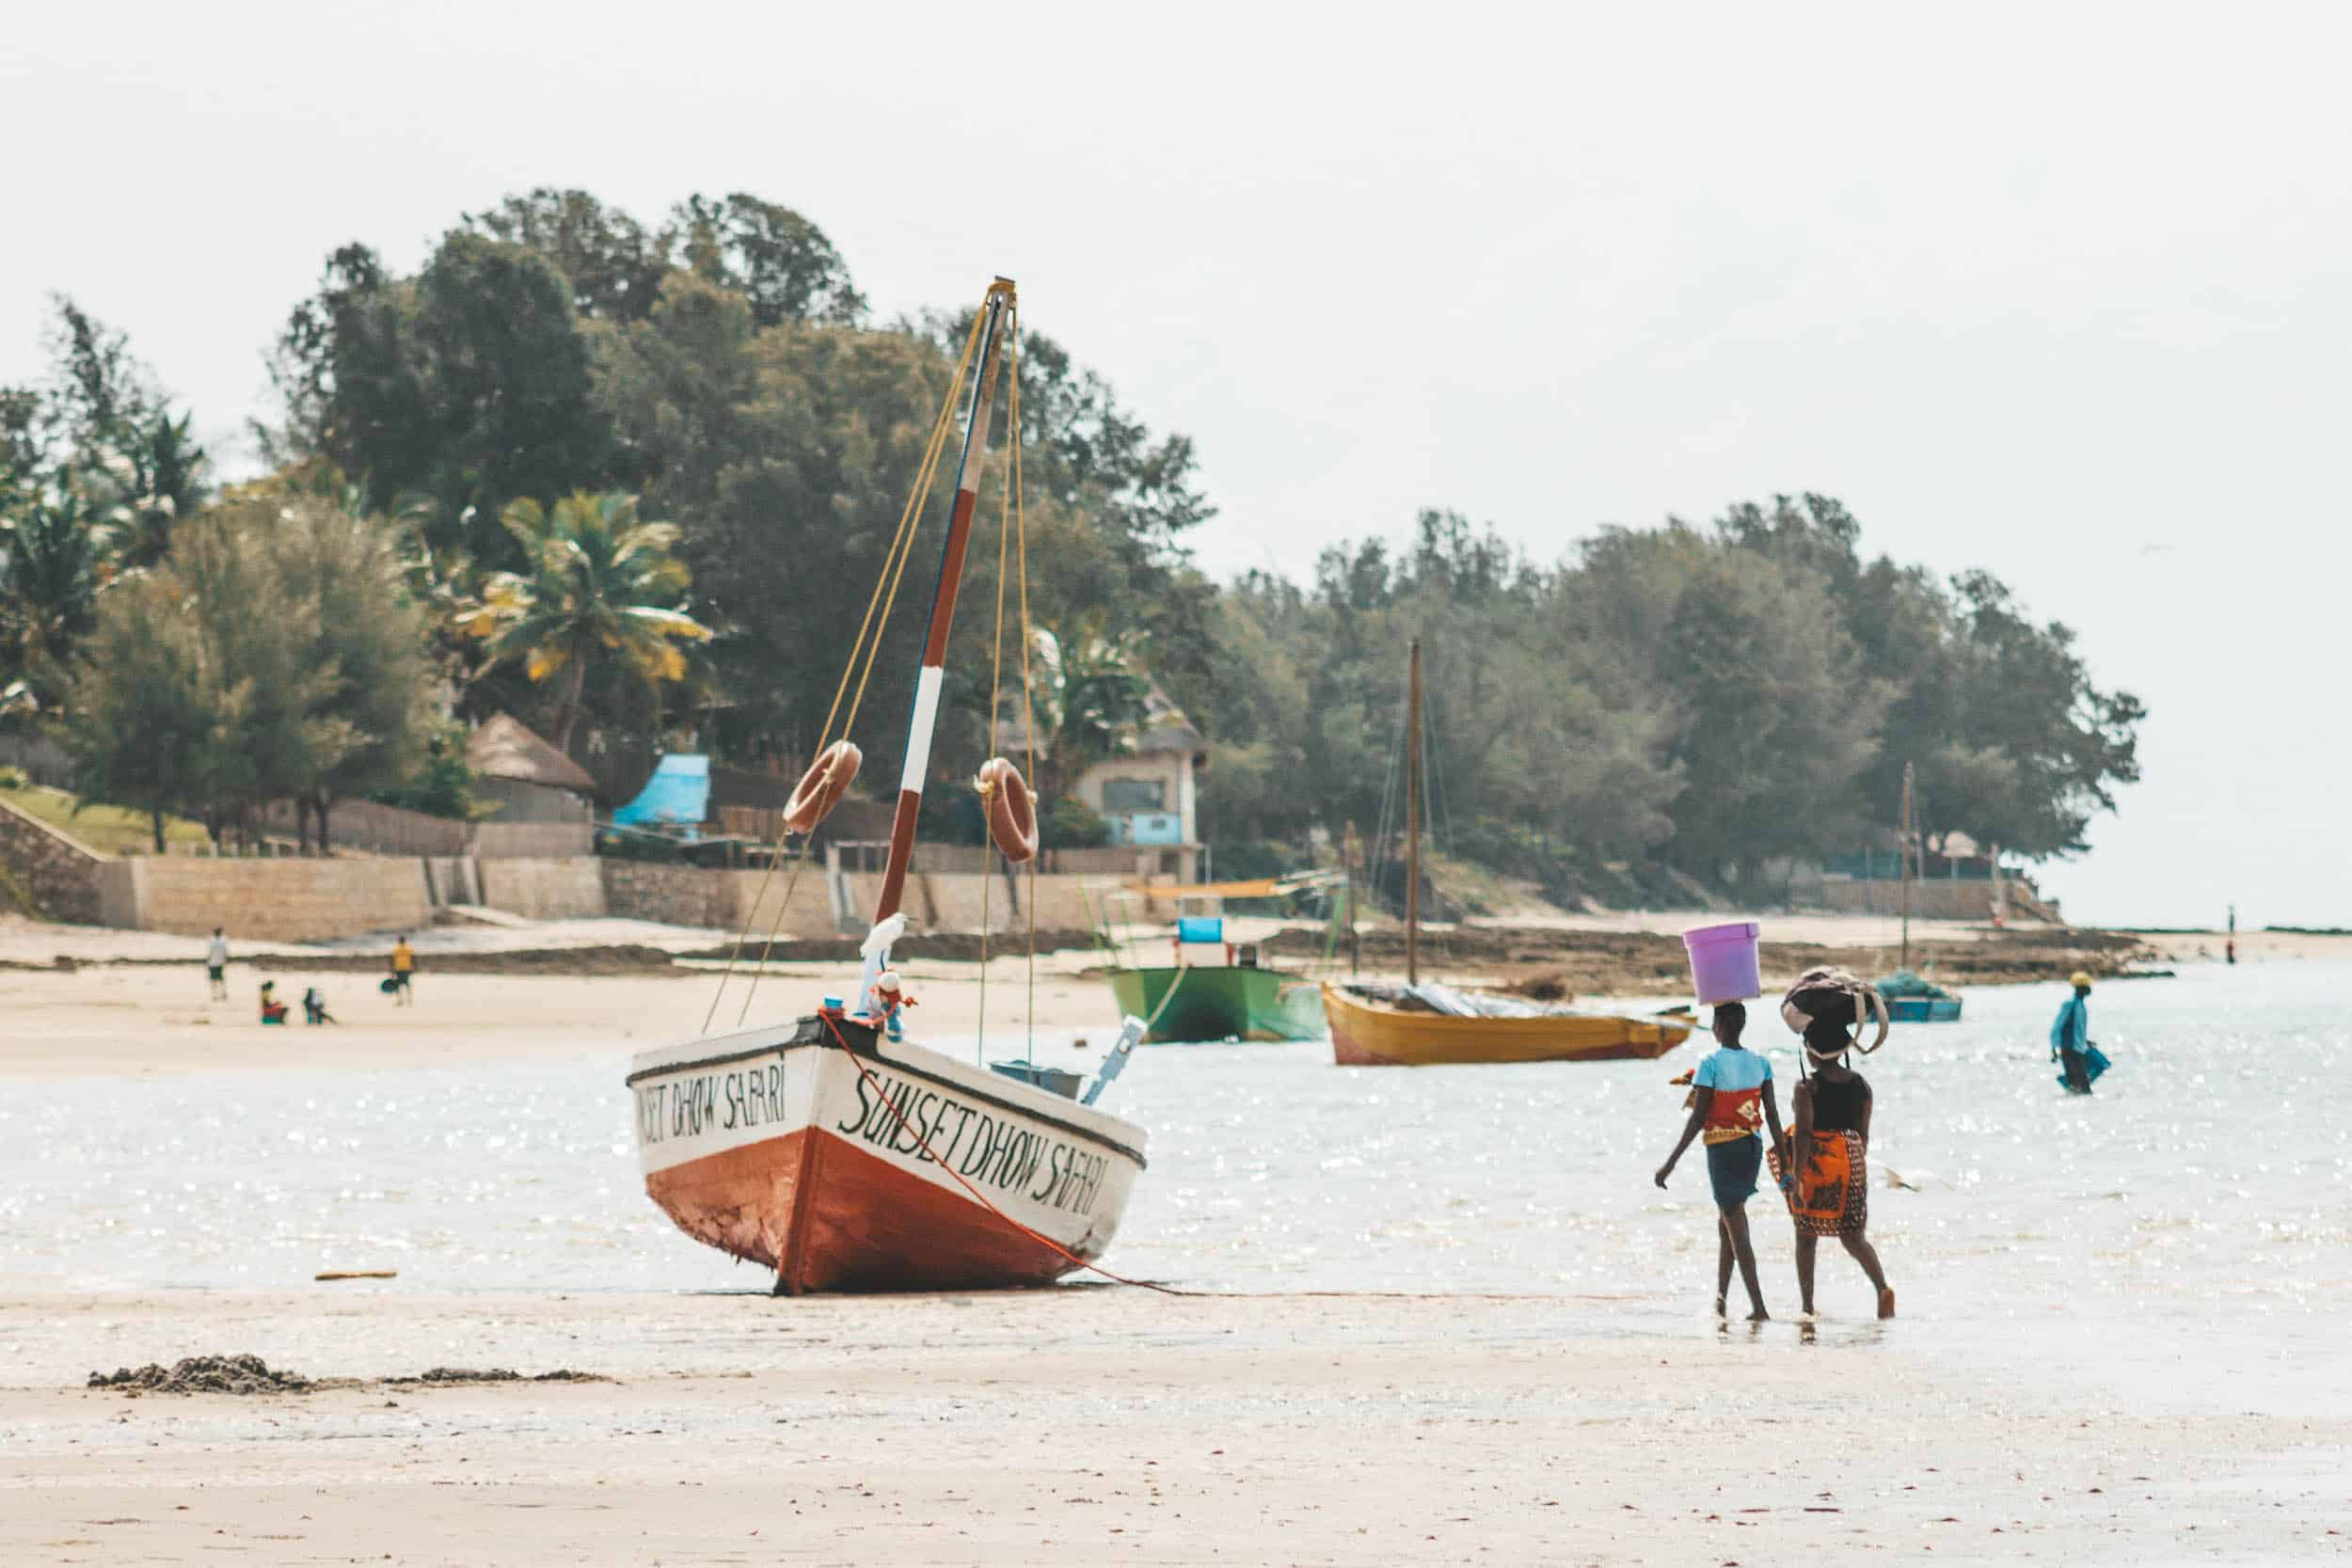 Mozambique Beach and Boats at Low Tide